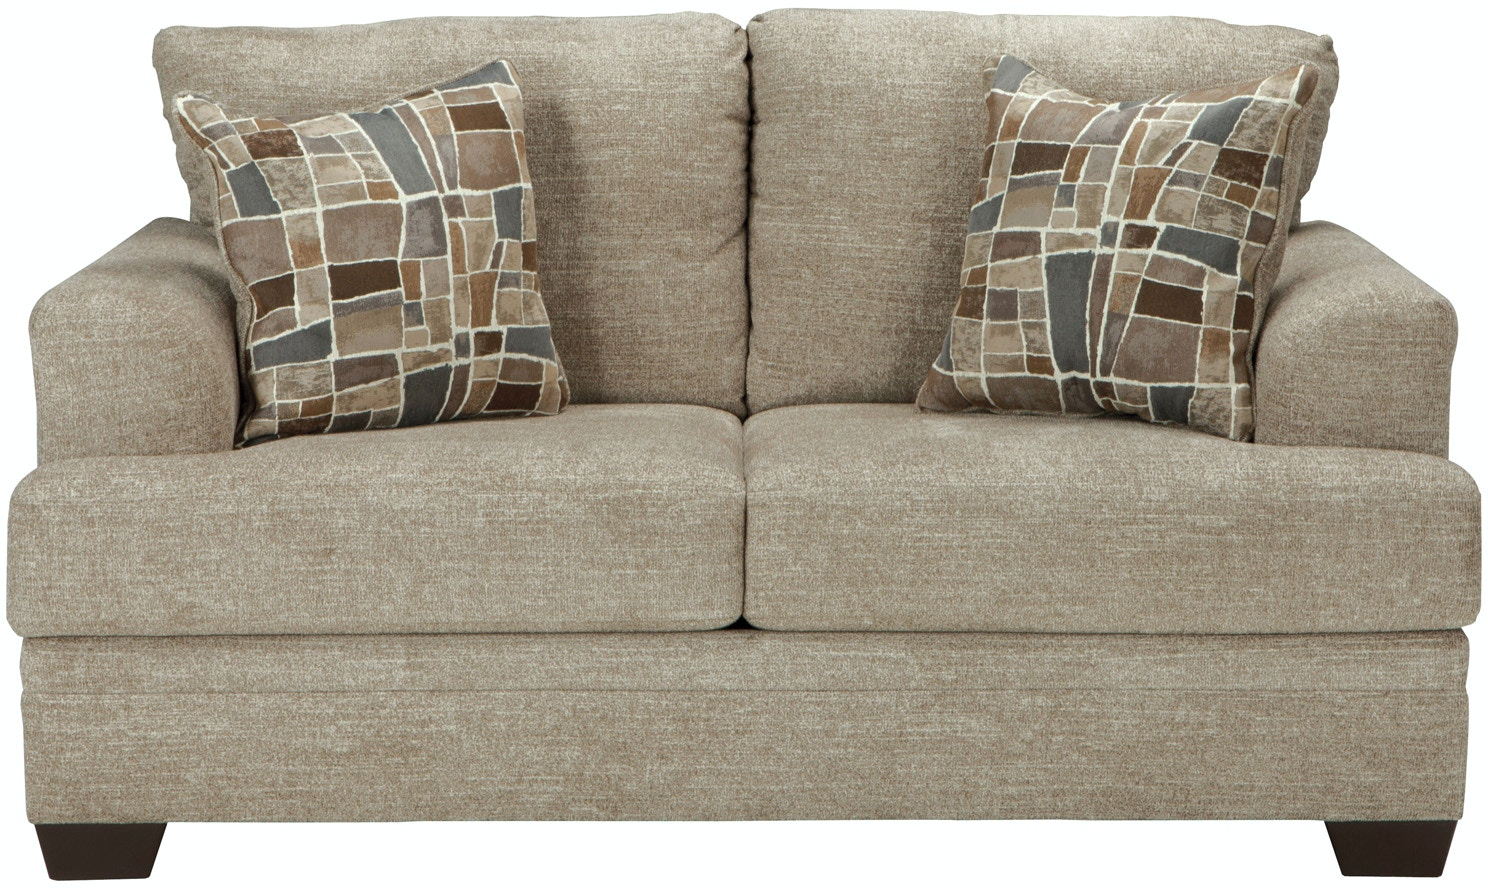 Signature Design by Ashley Living Room Barrish Chair and a